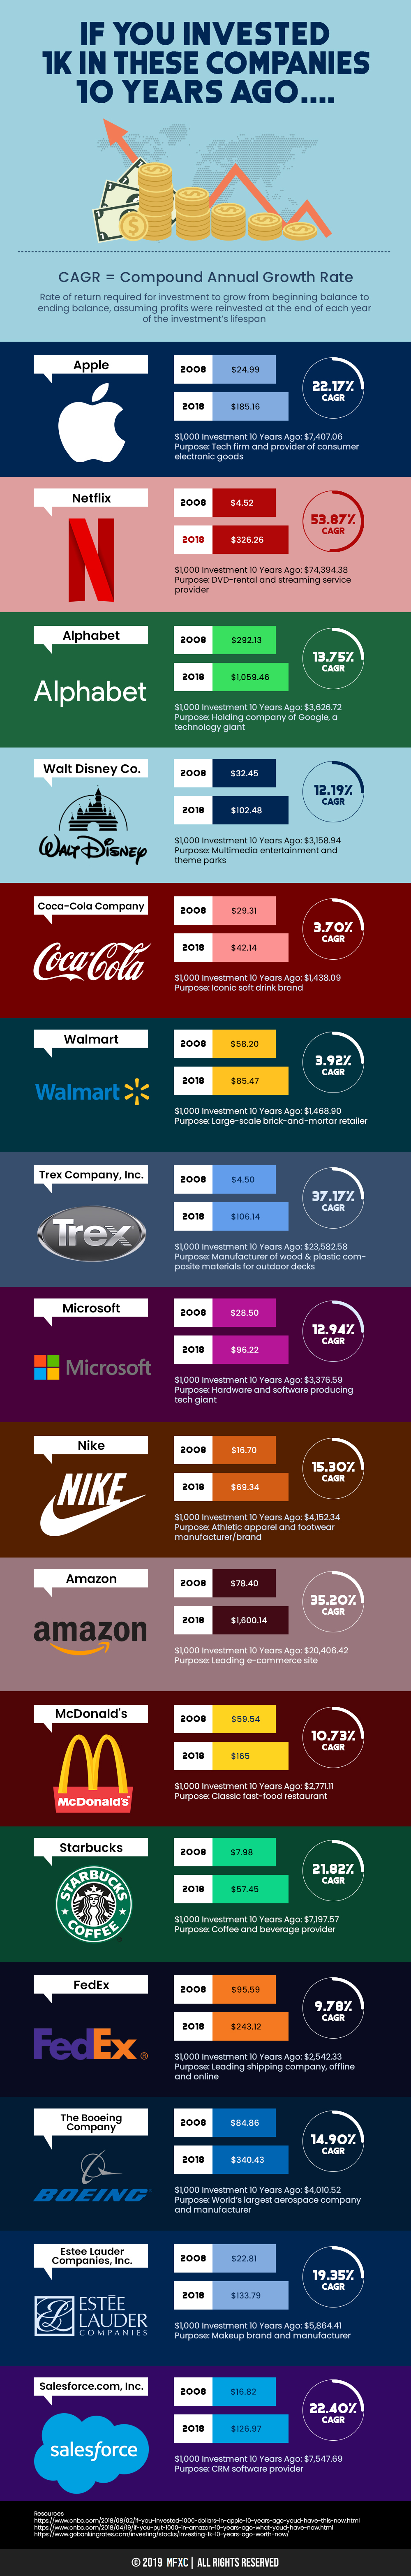 If You Invested 1K in These Companies 10 Years Ago